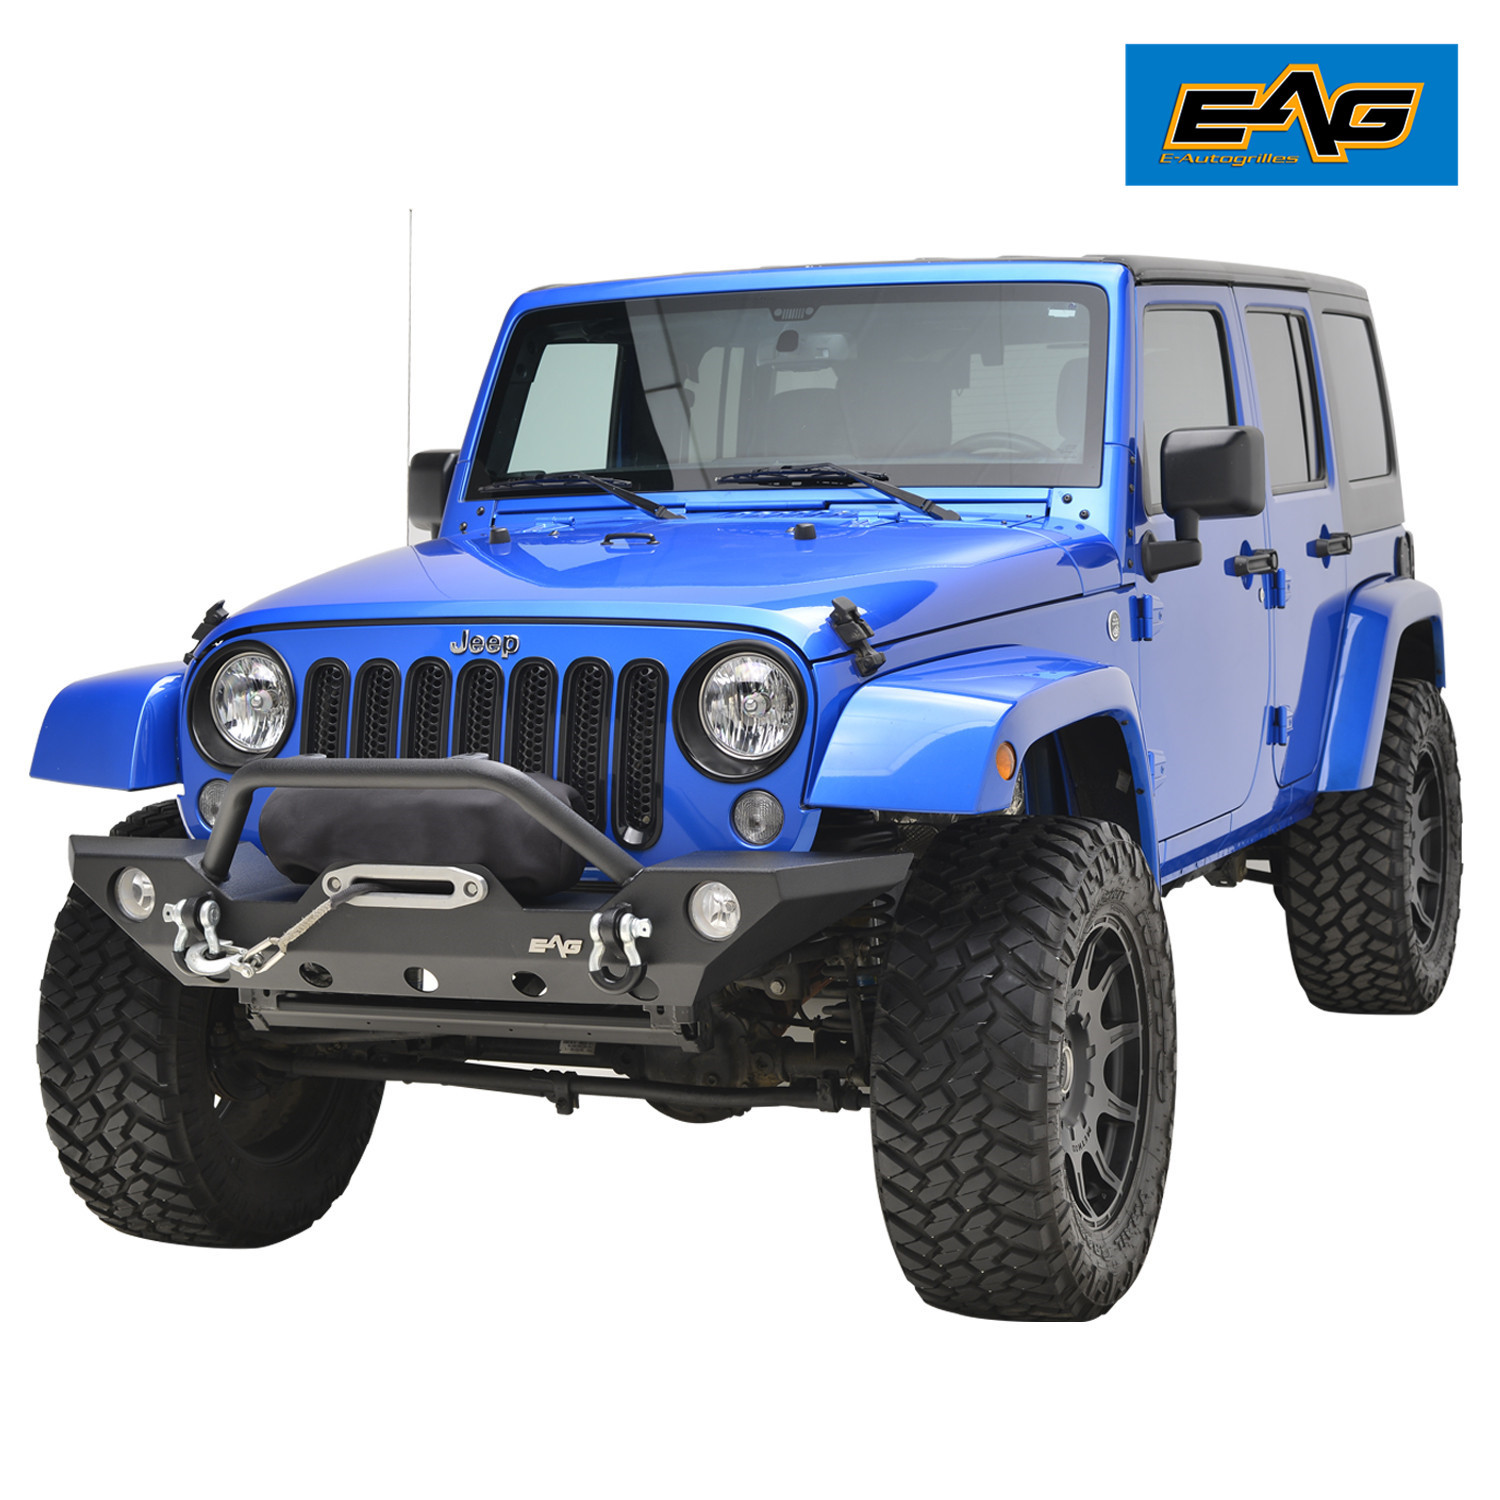 EAG Front Bumper with LED Lights for 2007-2018 Jeep Wrangler JK